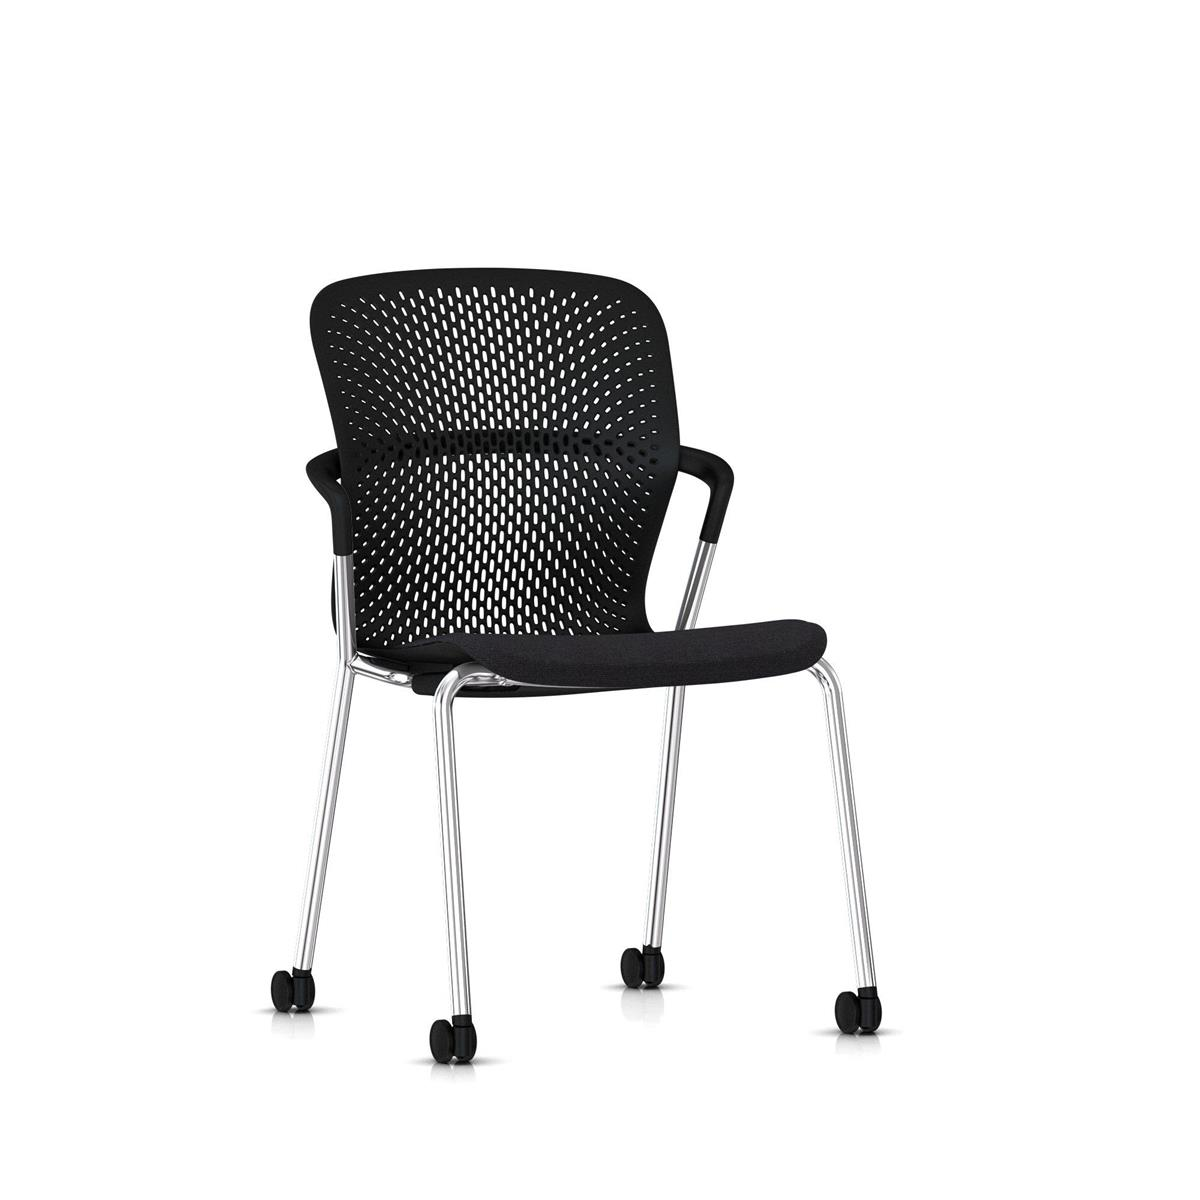 Keyn 4 Leg Chair Chrome & Black - Camira Sprint tekstil og trinser